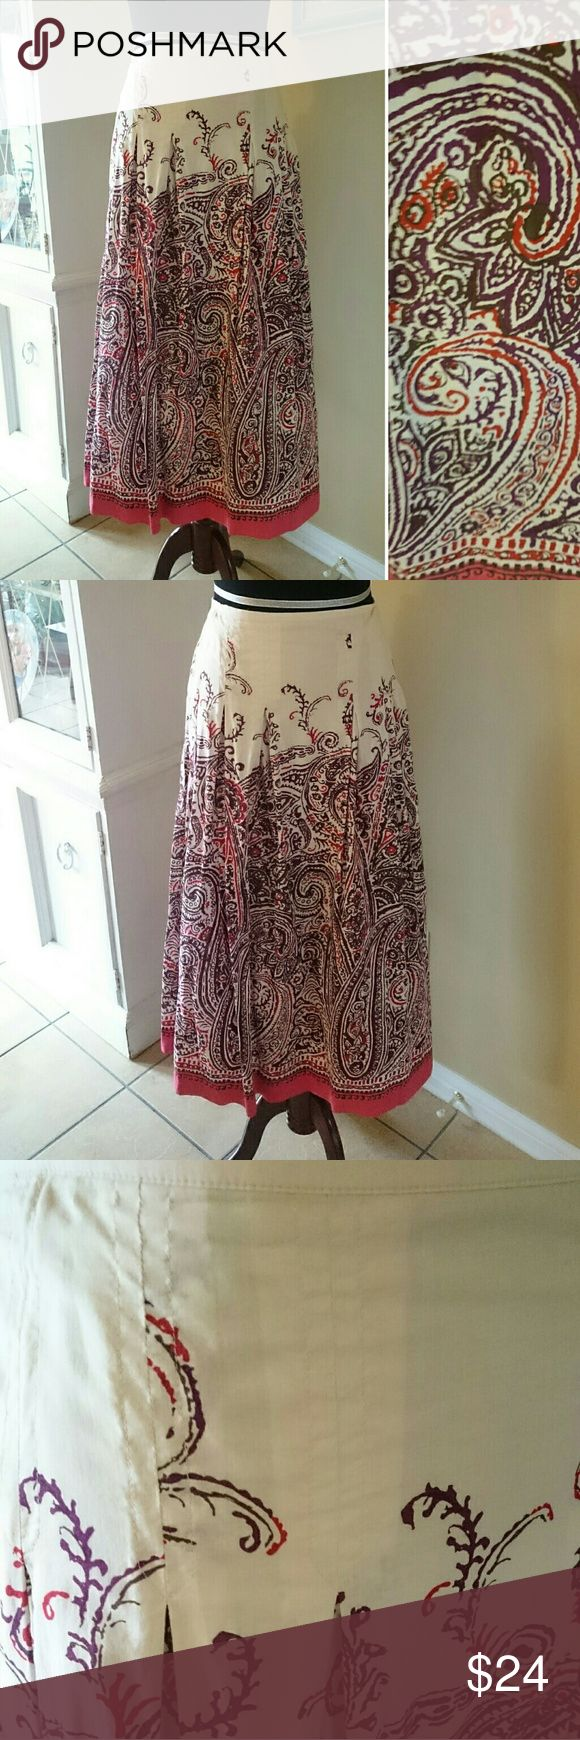 """Beautiful Talbots Skirt EUC. Such a pretty skirt!  Fully lined, light weight skirt will make a perfect edition to your spring and summer wardrobe.  Colors are cream, plum and a dusty coral. Zips on the side. 100% cotton.  Laying flat from top to hemline is about 33.5"""" and across at the waist is 18.5"""". Talbots Skirts Maxi"""